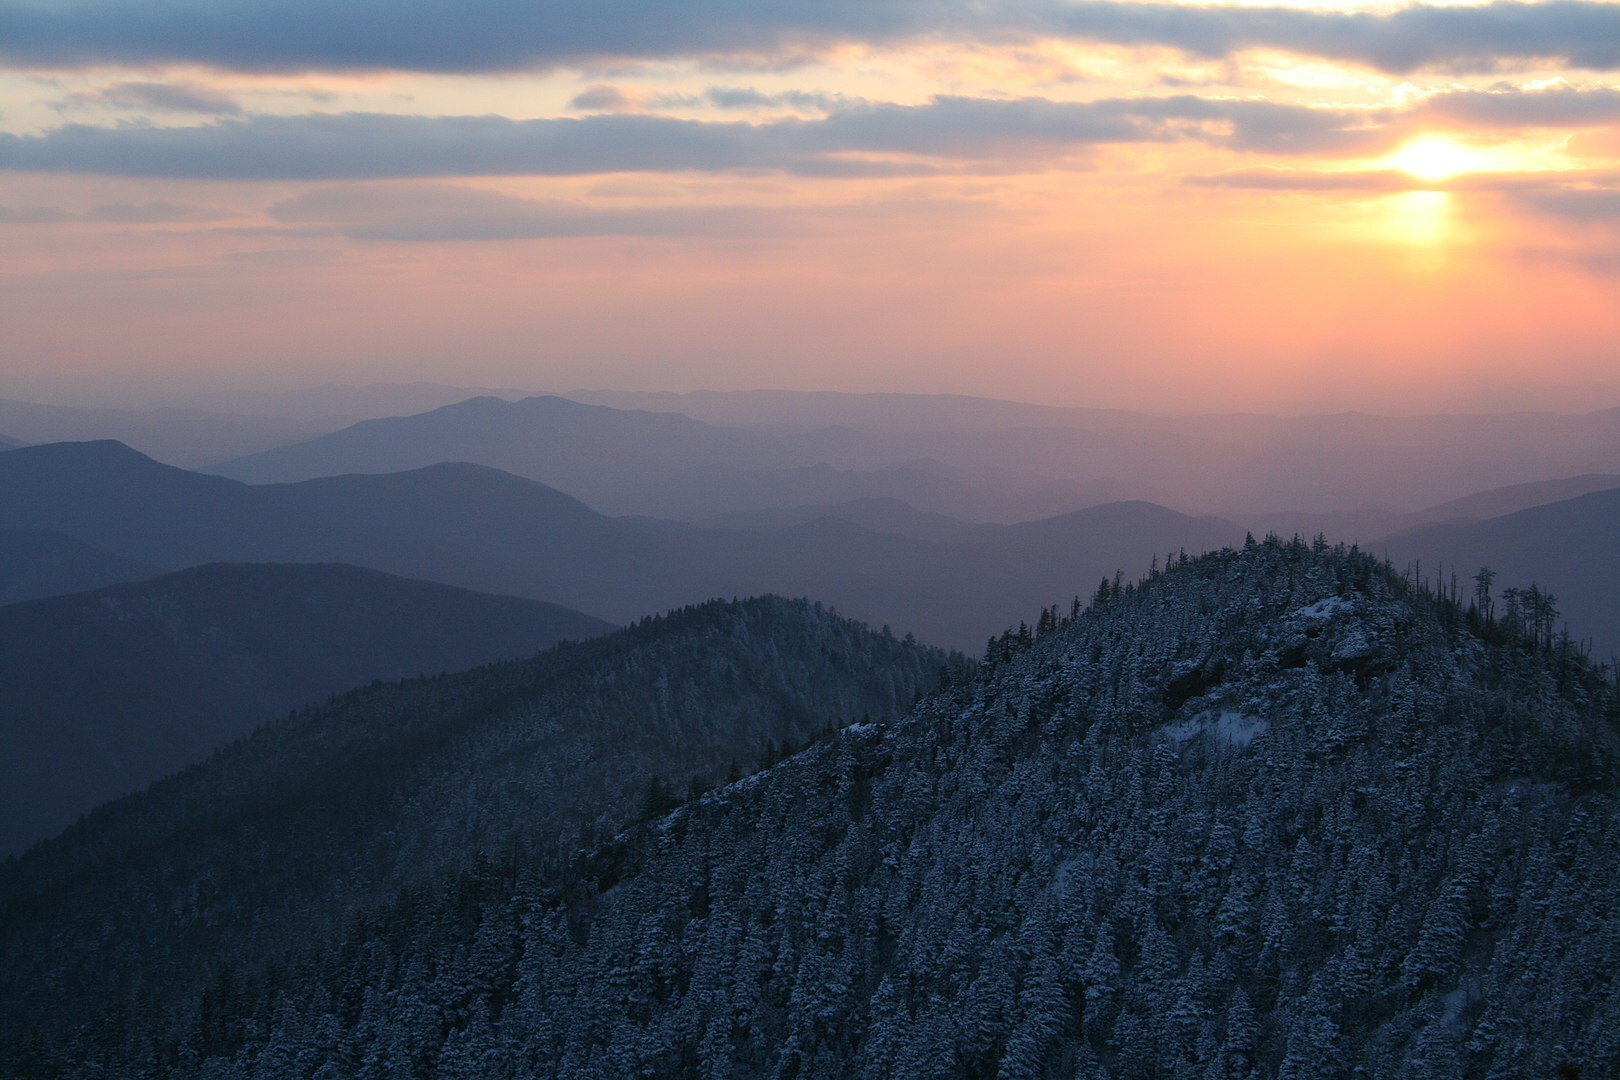 Cliff Tops on Mount Le Conte, Great Smoky Mountains